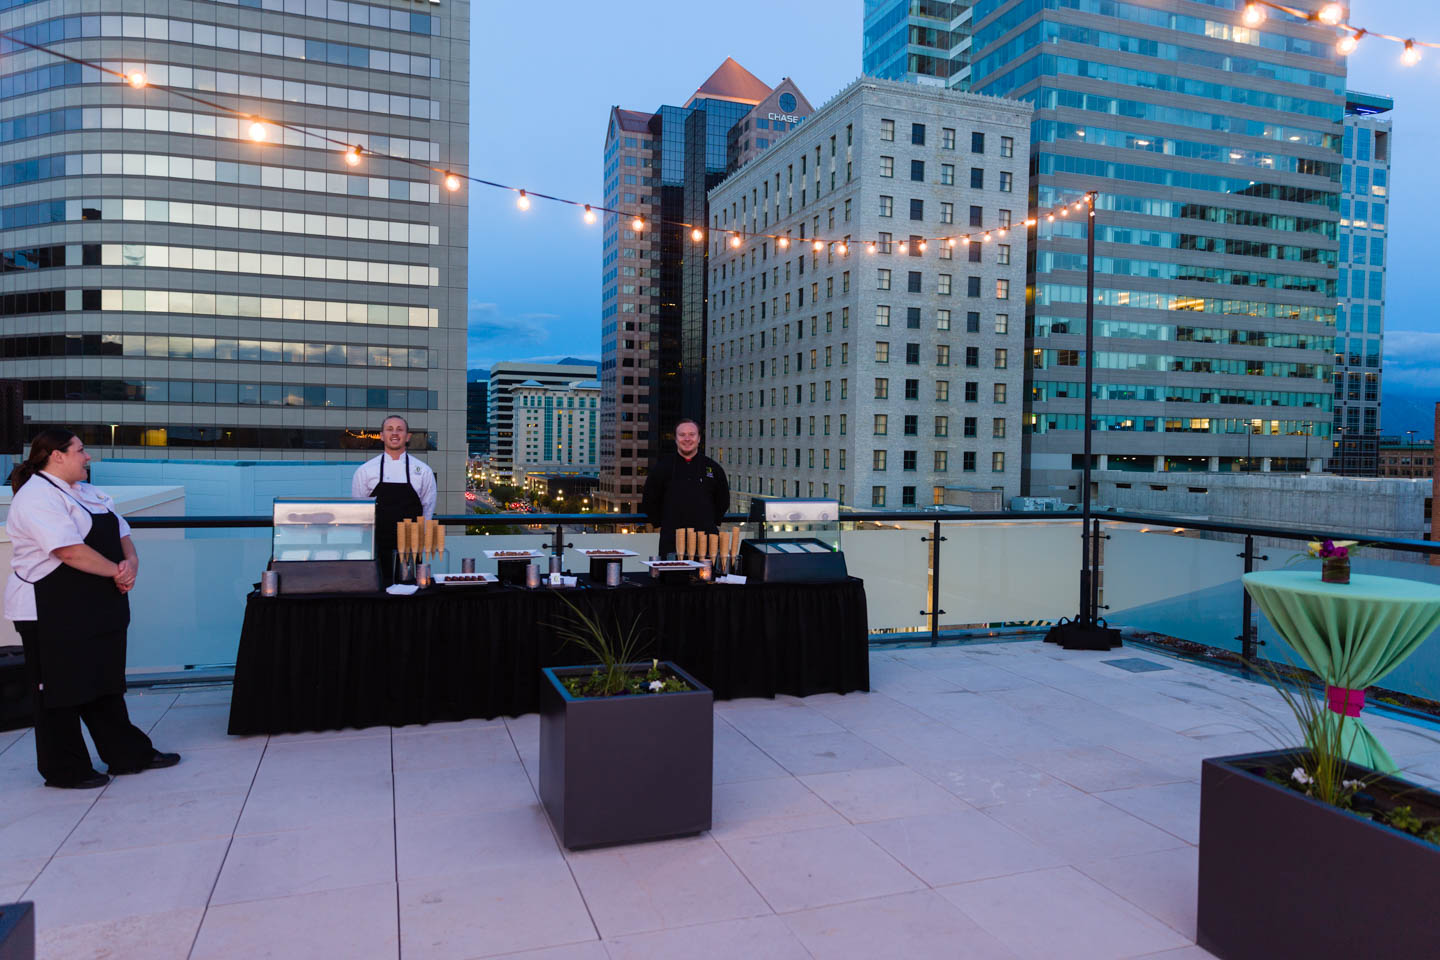 Caterers ready for the rooftop party